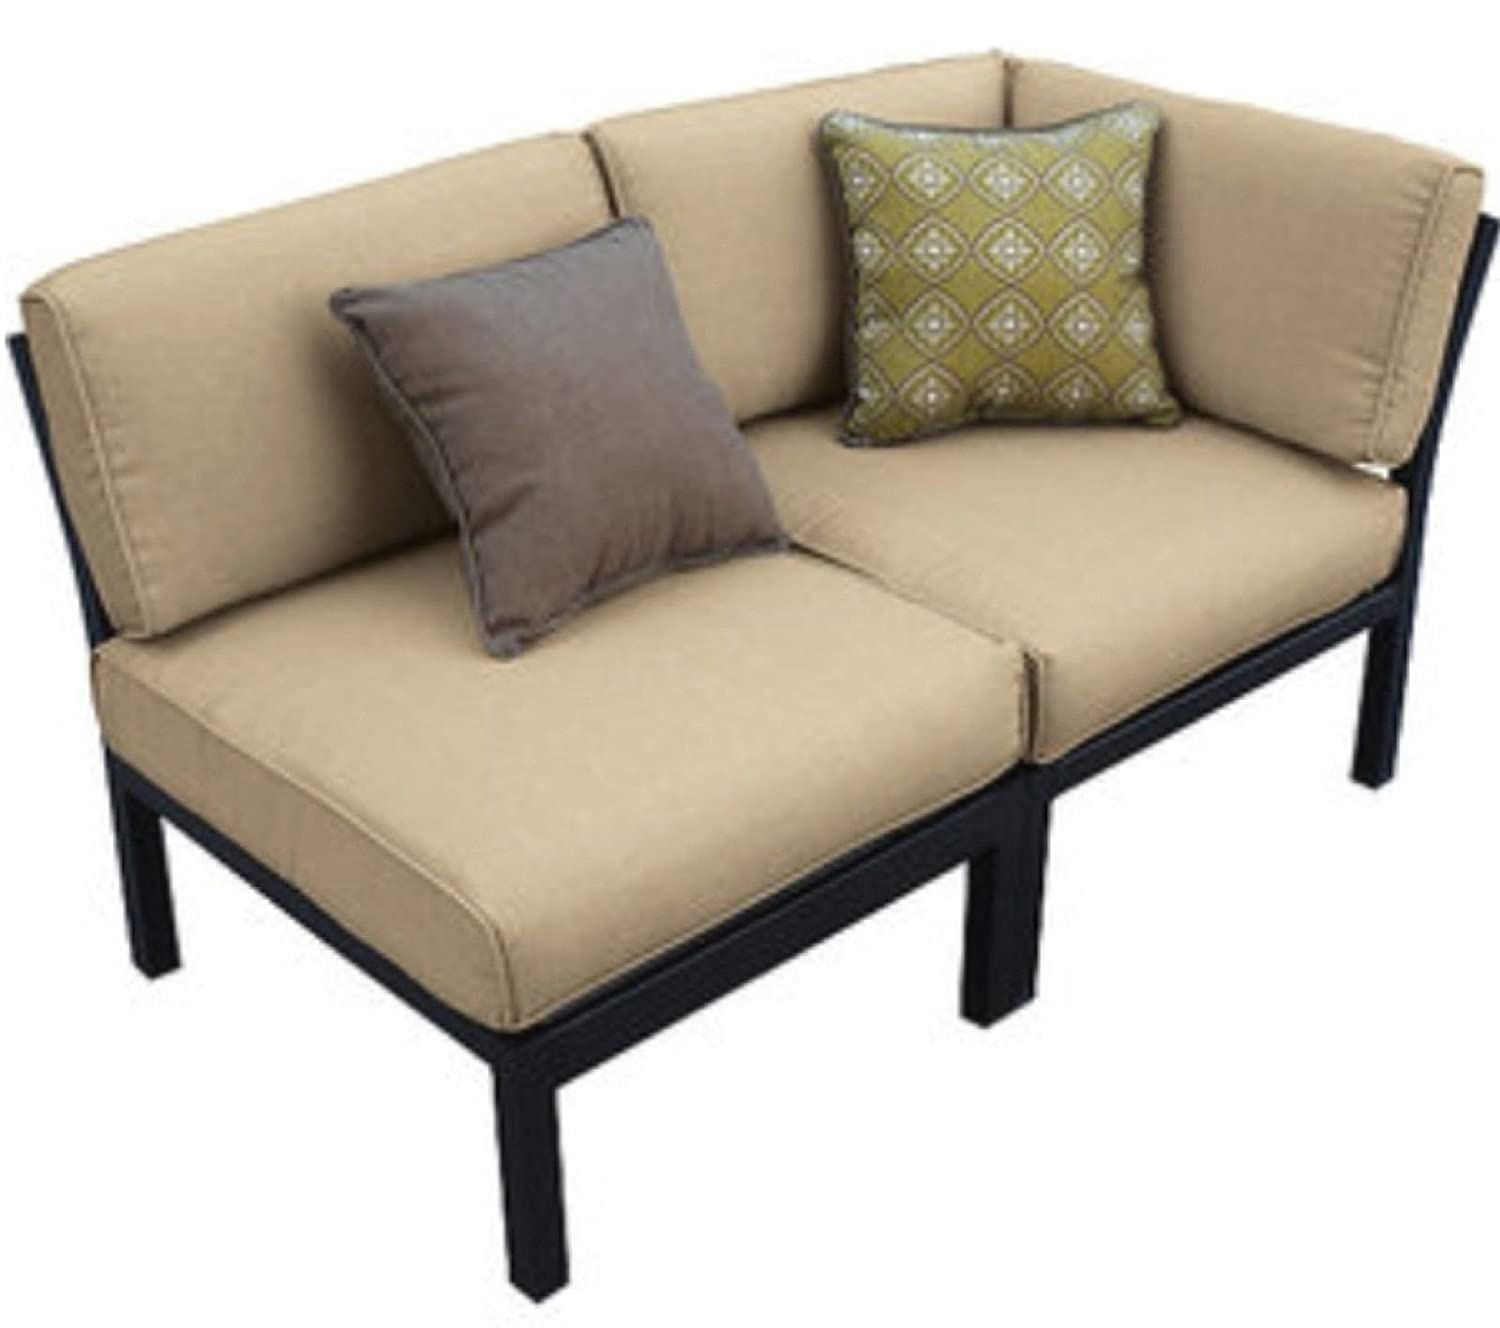 Amazon.com : Outdoor Patio Sectional 7 Piece Stylish Furniture Sofa Set  Seats Deep Seating : Garden U0026 Outdoor